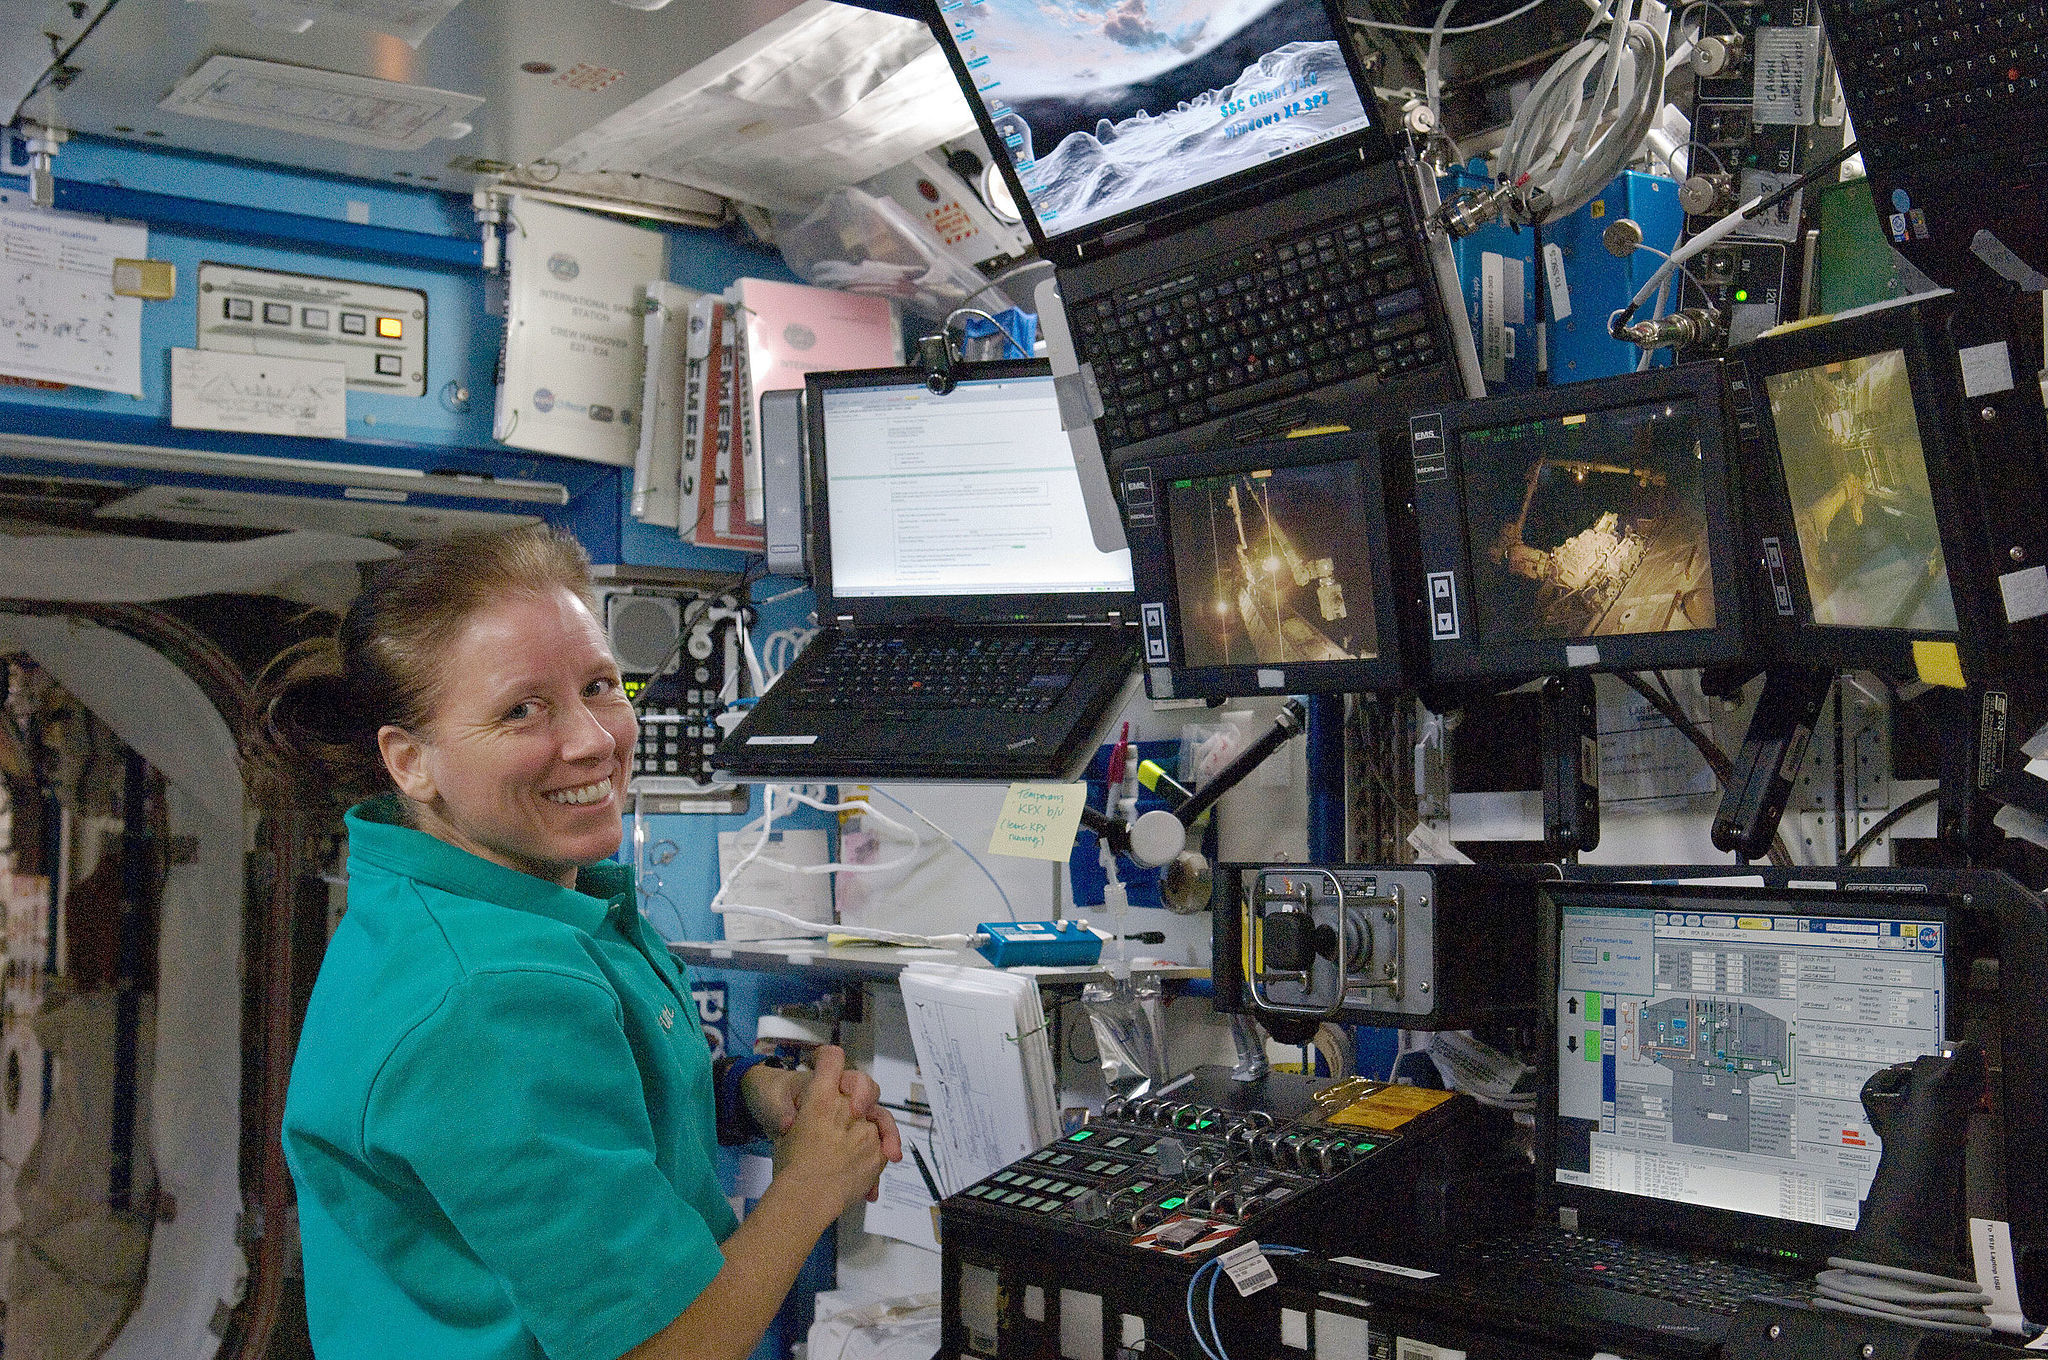 NASA astronaut Shannon Walker, Expedition 24 flight engineer, is pictured near a robotic workstation in the Destiny laboratory of the International Space Station. One day I'll have a workstation as cool as hers. LICENCE: Public Domain.